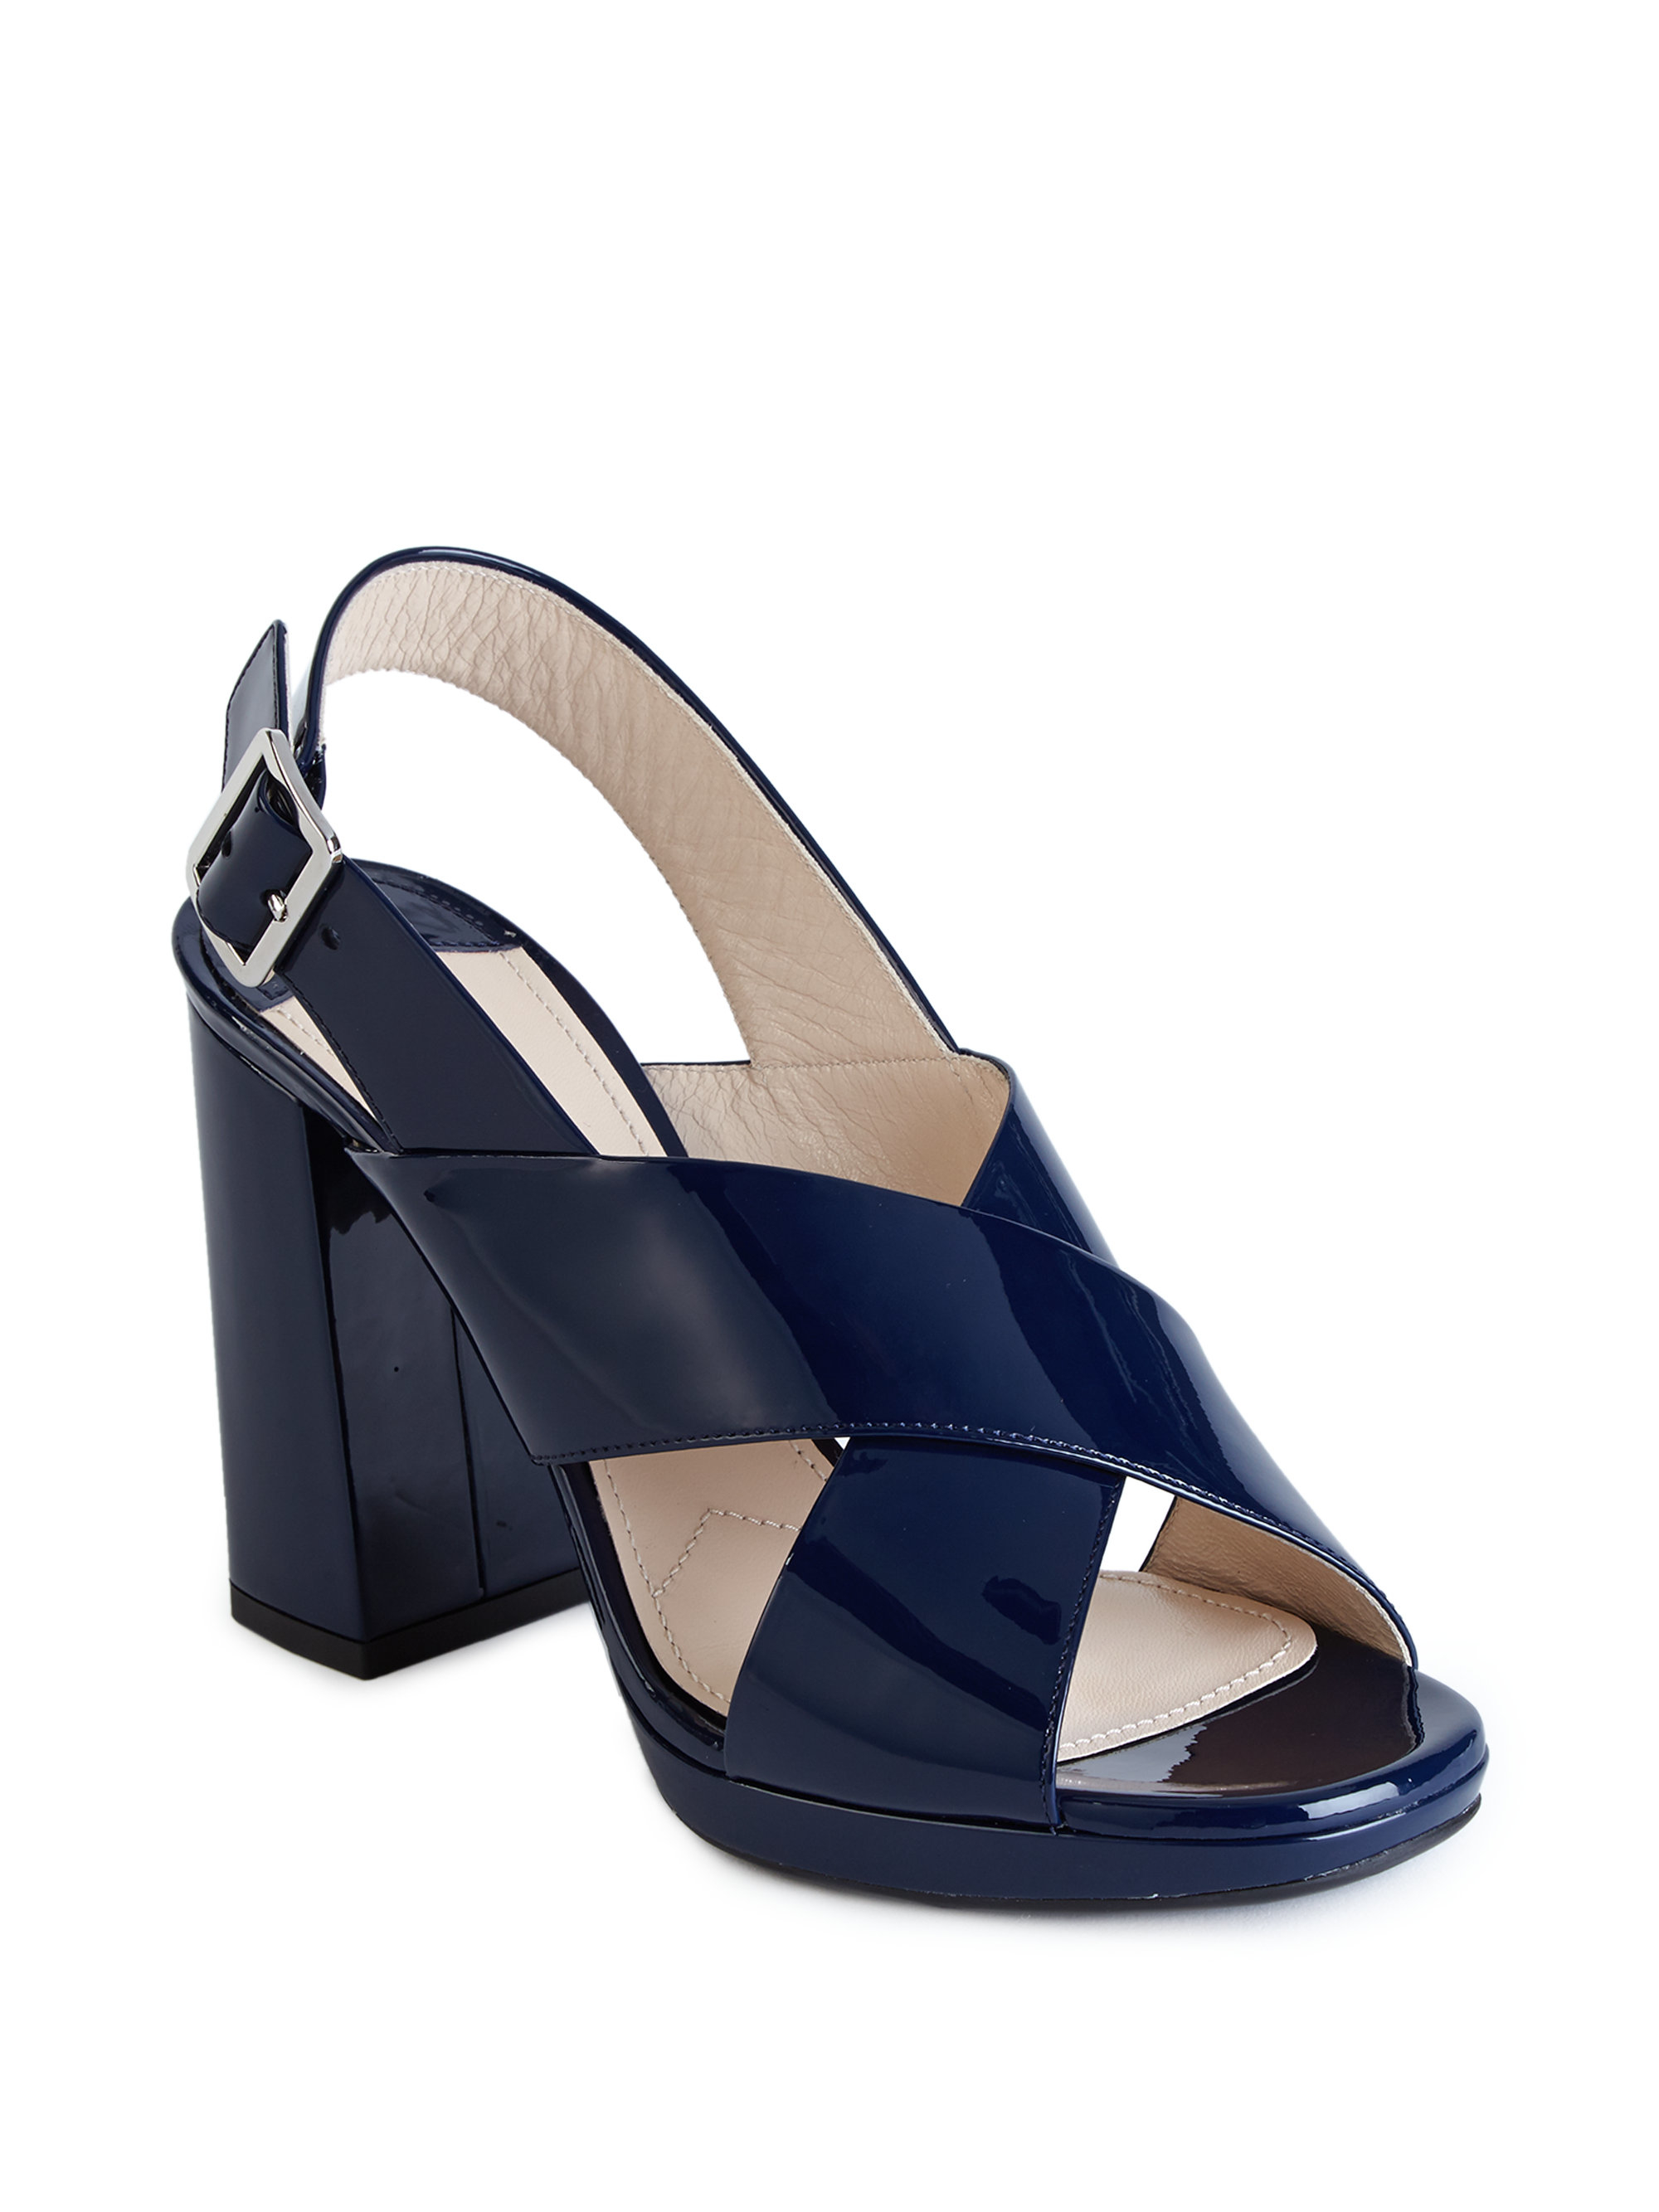 Lyst Prada Patent Leather Crisscross Block Heel Sandals